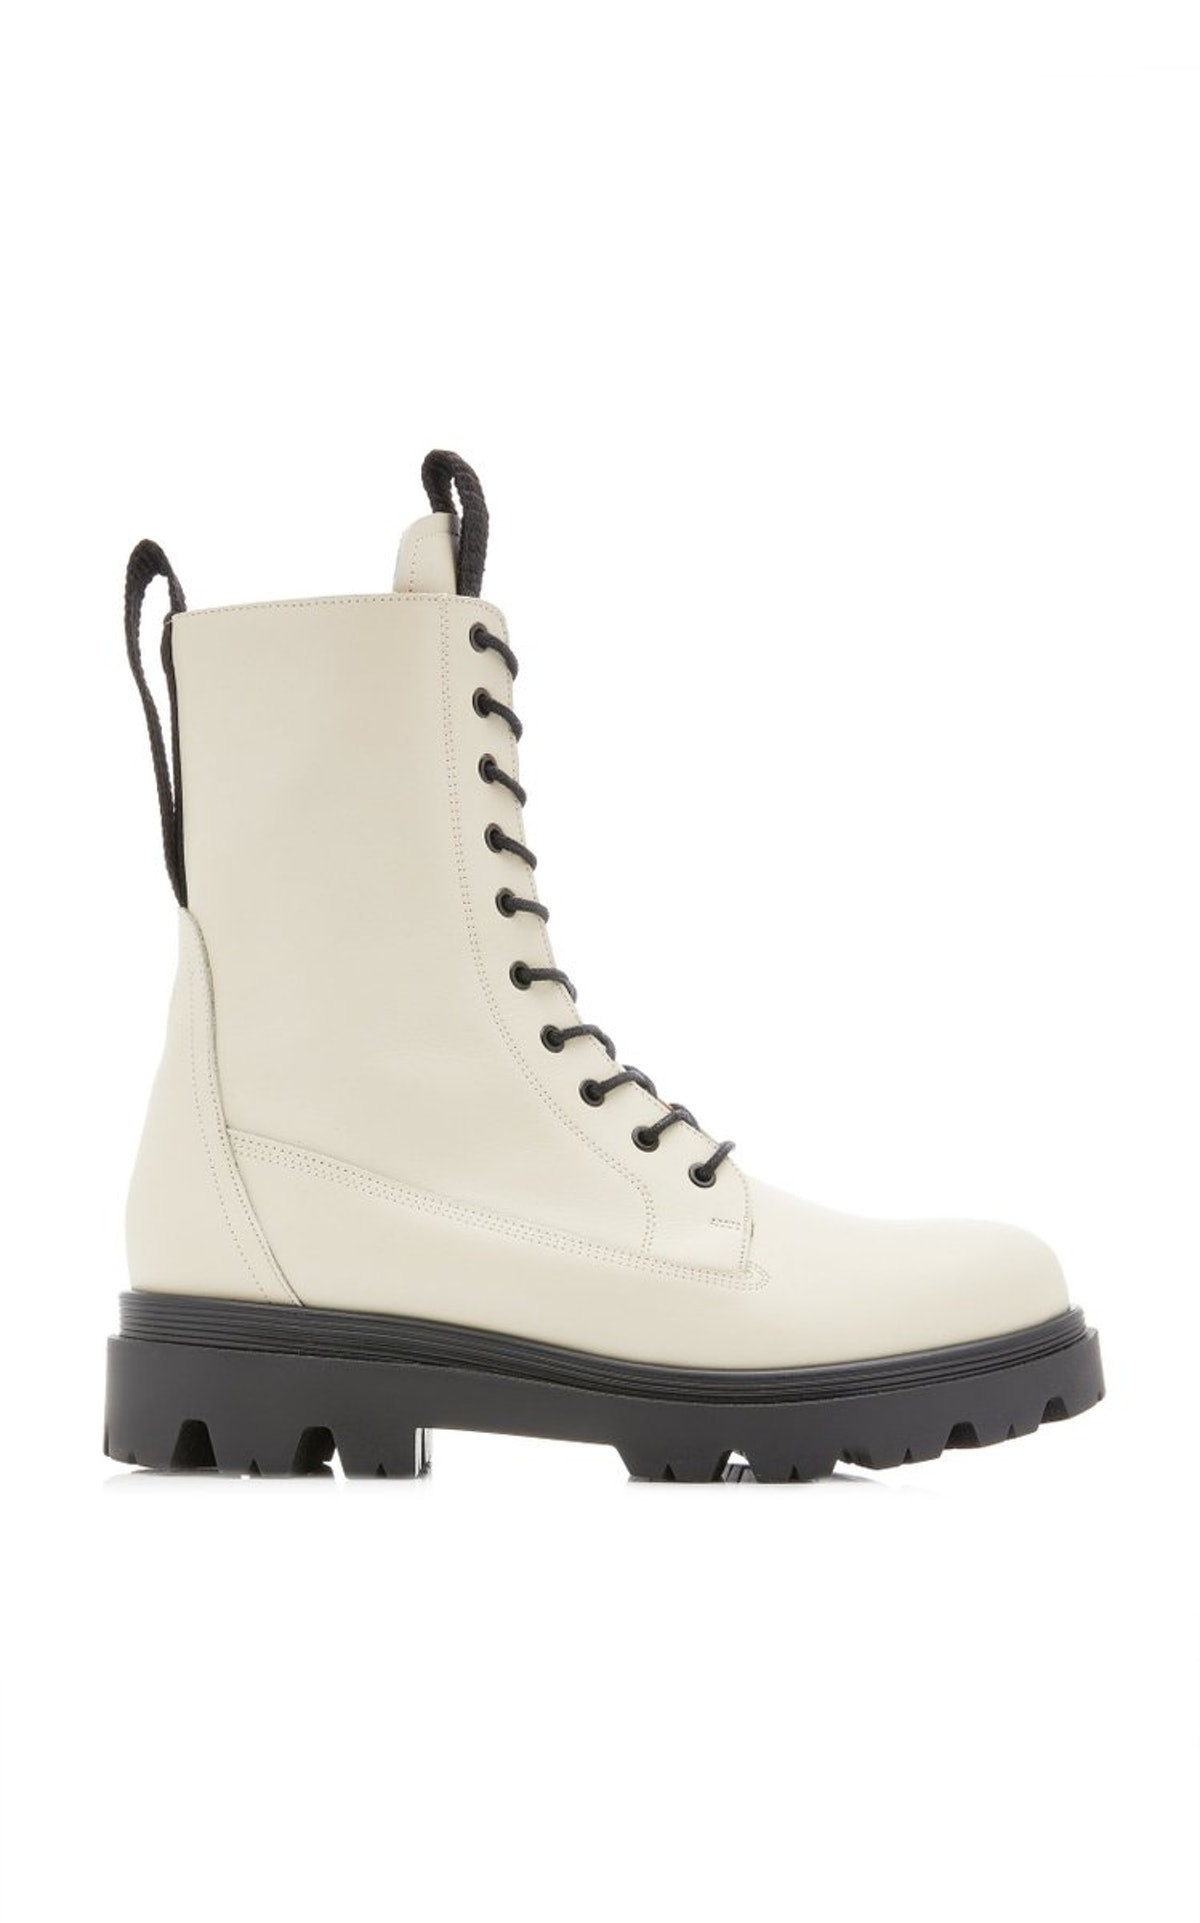 Lovi white leather combat boots from Flattered, available to shop on Moda Operandi.